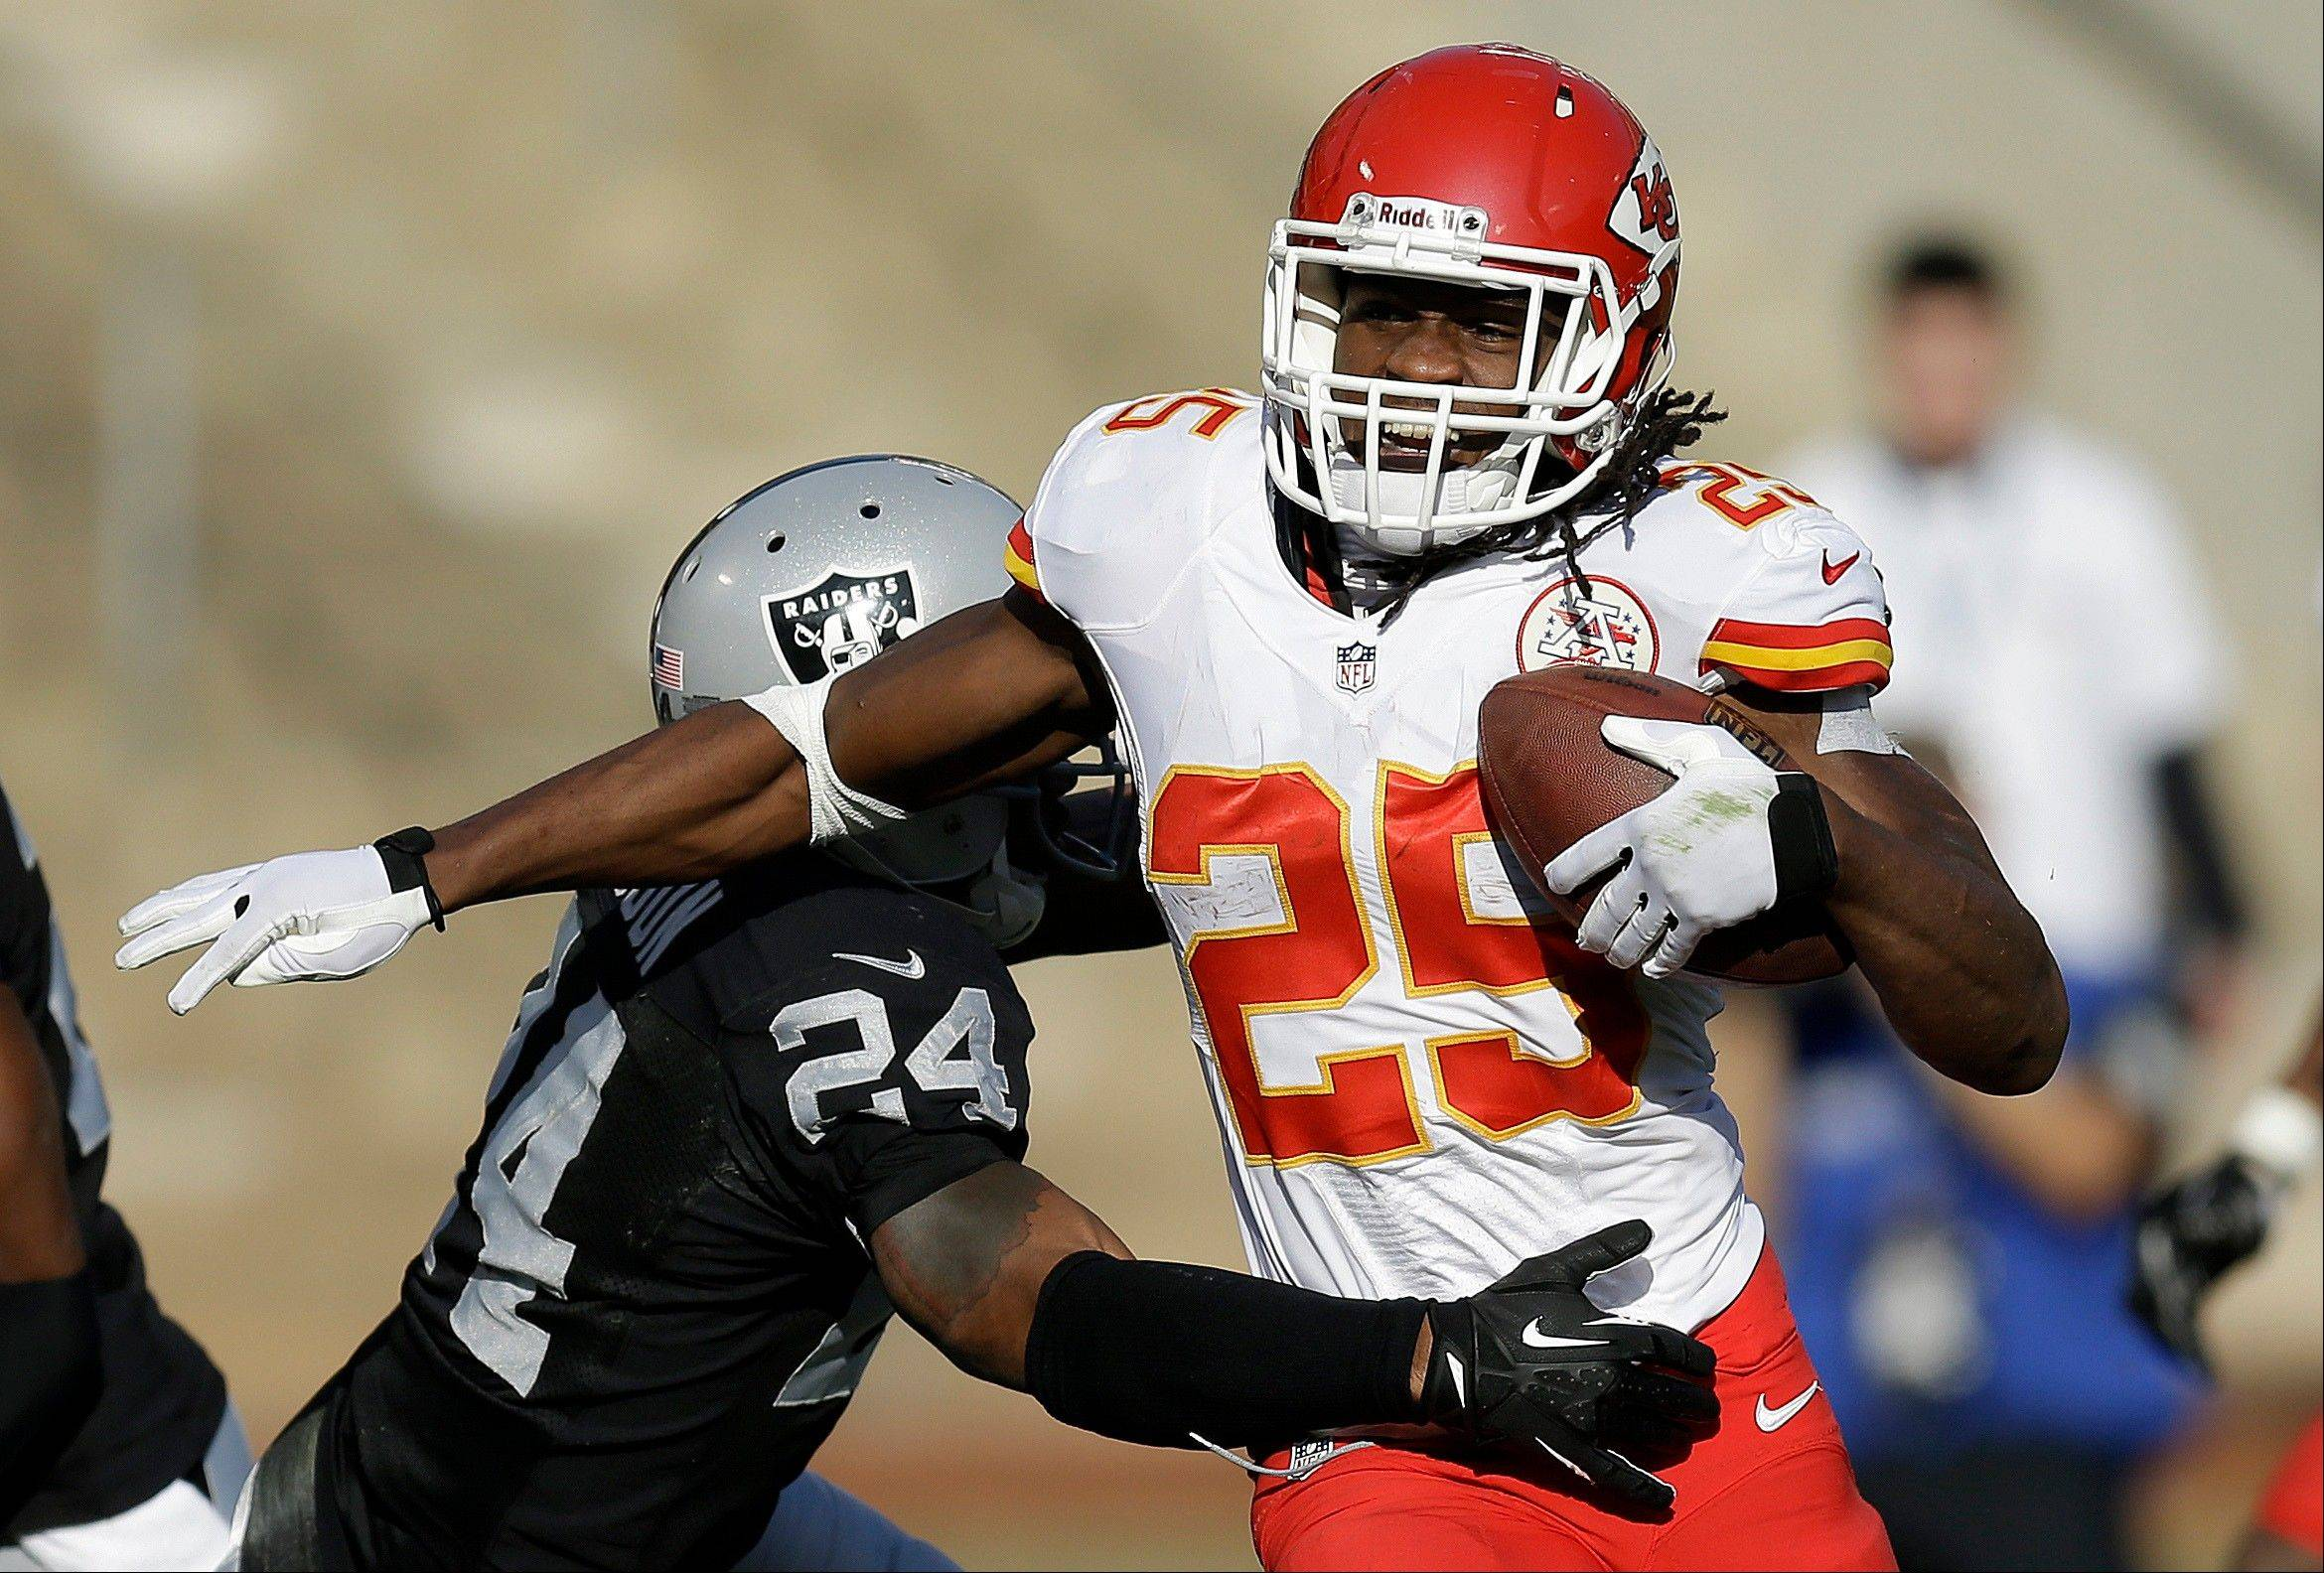 Kansas City Chiefs running back Jamaal Charles (25) runs against Oakland Raiders cornerback Charles Woodson during the second quarter of an NFL football game in Oakland, Calif., Sunday, Dec. 15, 2013.